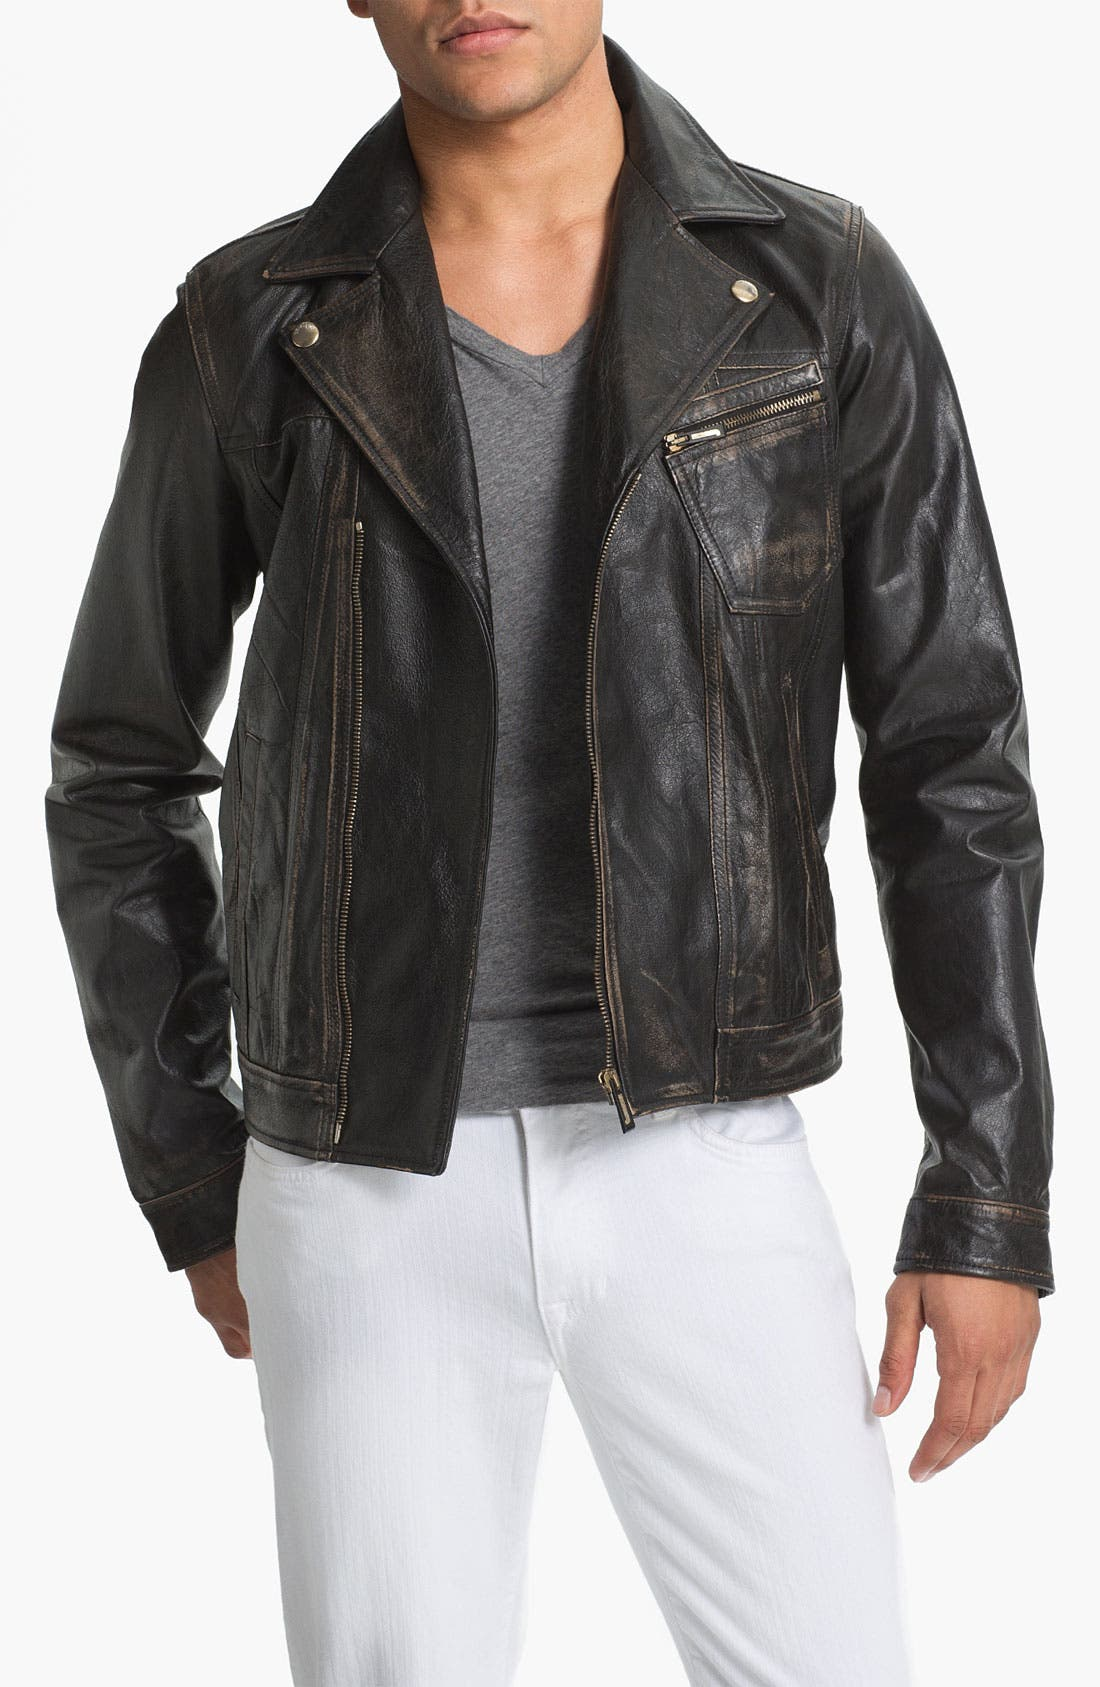 Main Image - Just Cavalli Leather Moto Jacket